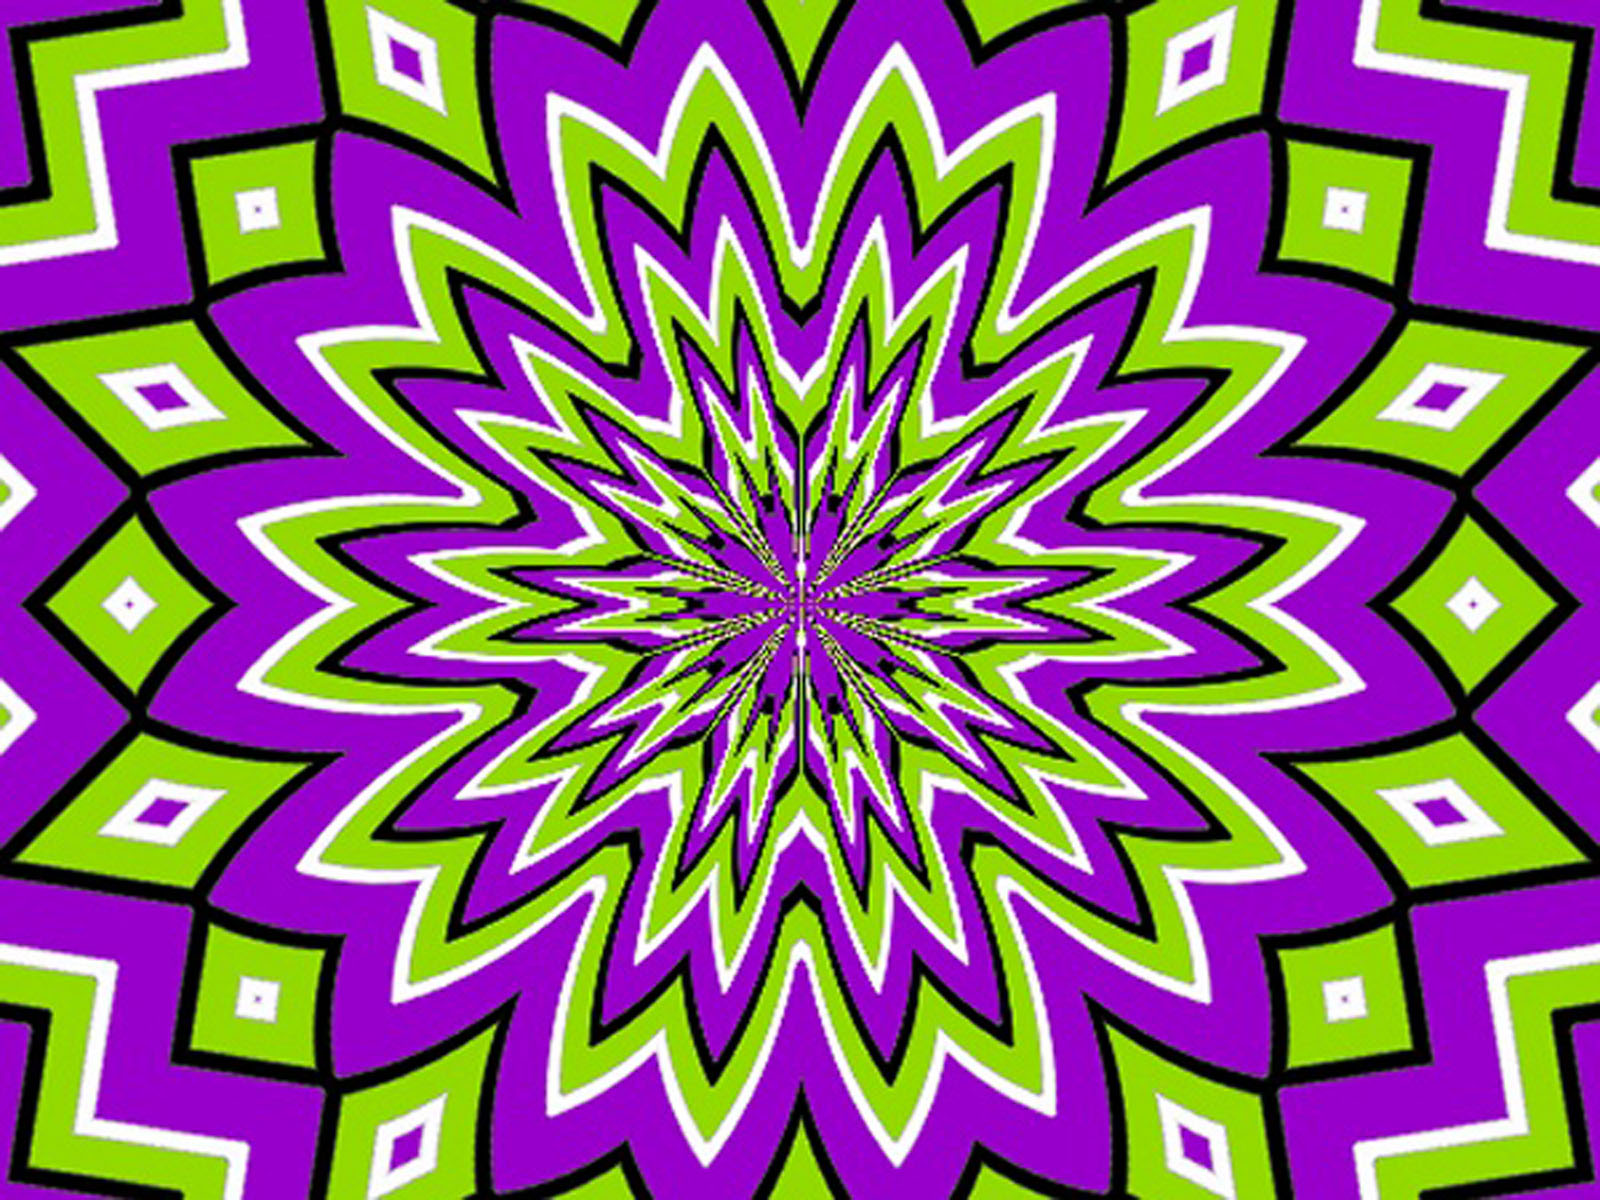 optical illusion wallpapers illusions backgrounds desktop cool moving tricks eye brain mind teasers visual allusion movement awesome vision amazing perception